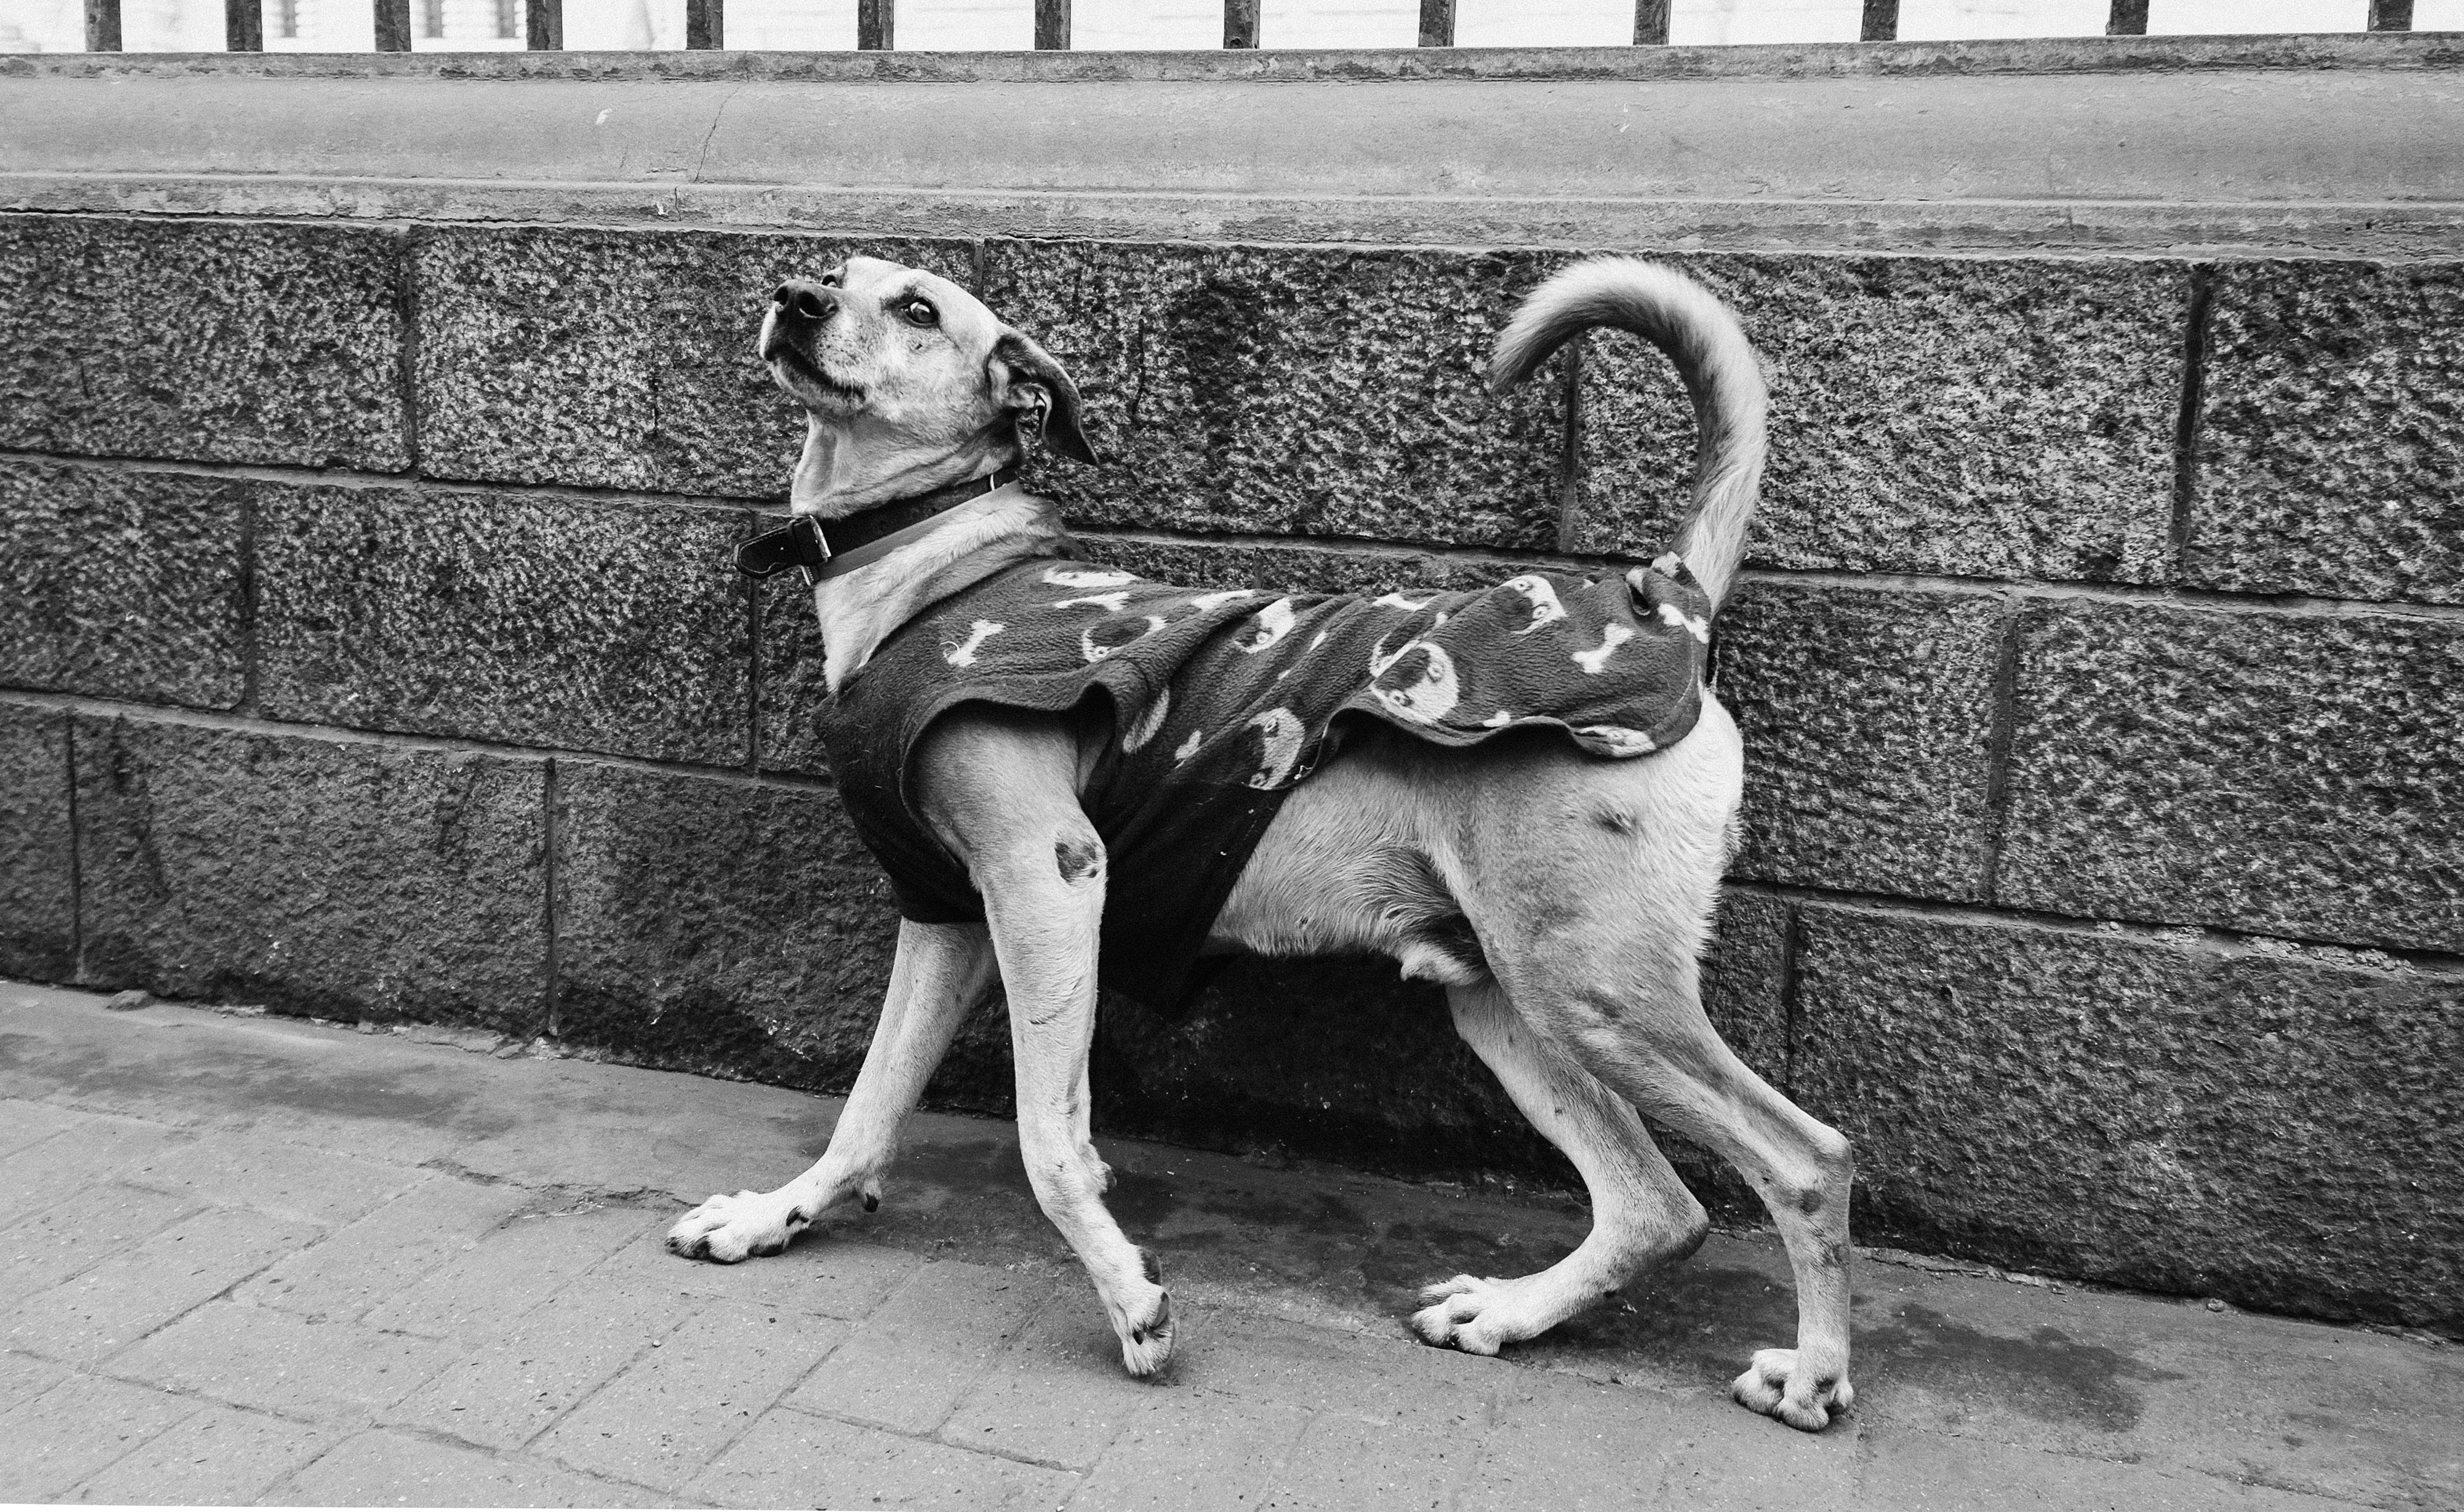 hedy bach images - dog - 4b-2